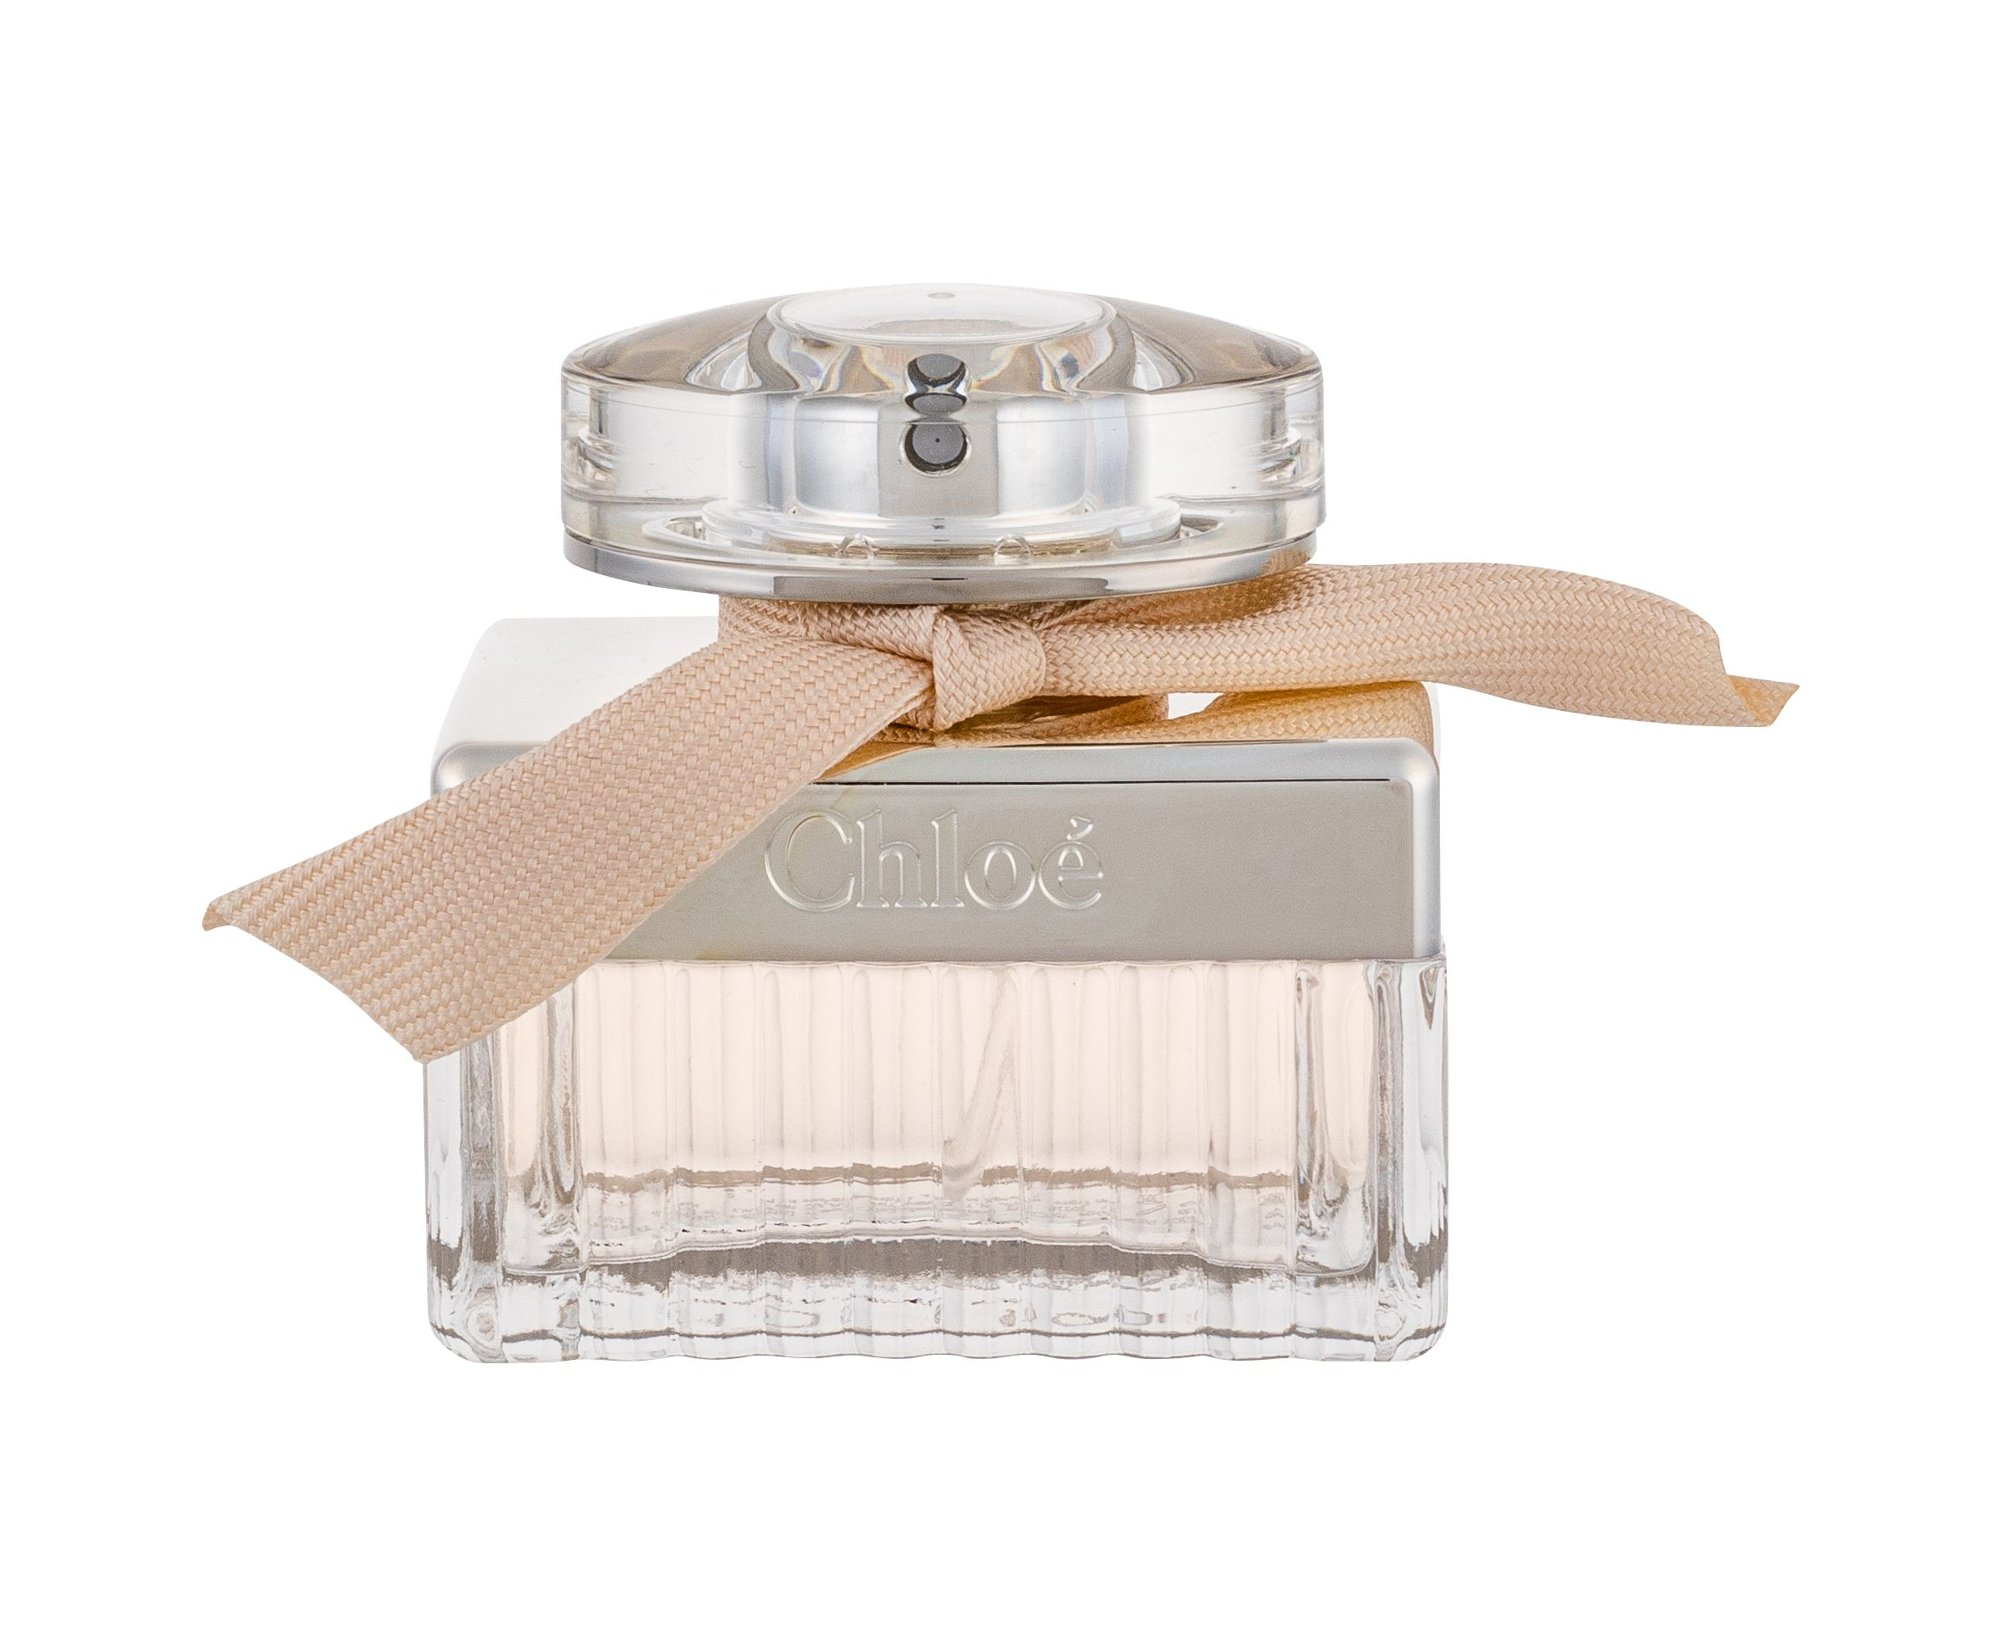 Chloe Chloe EDP 30ml